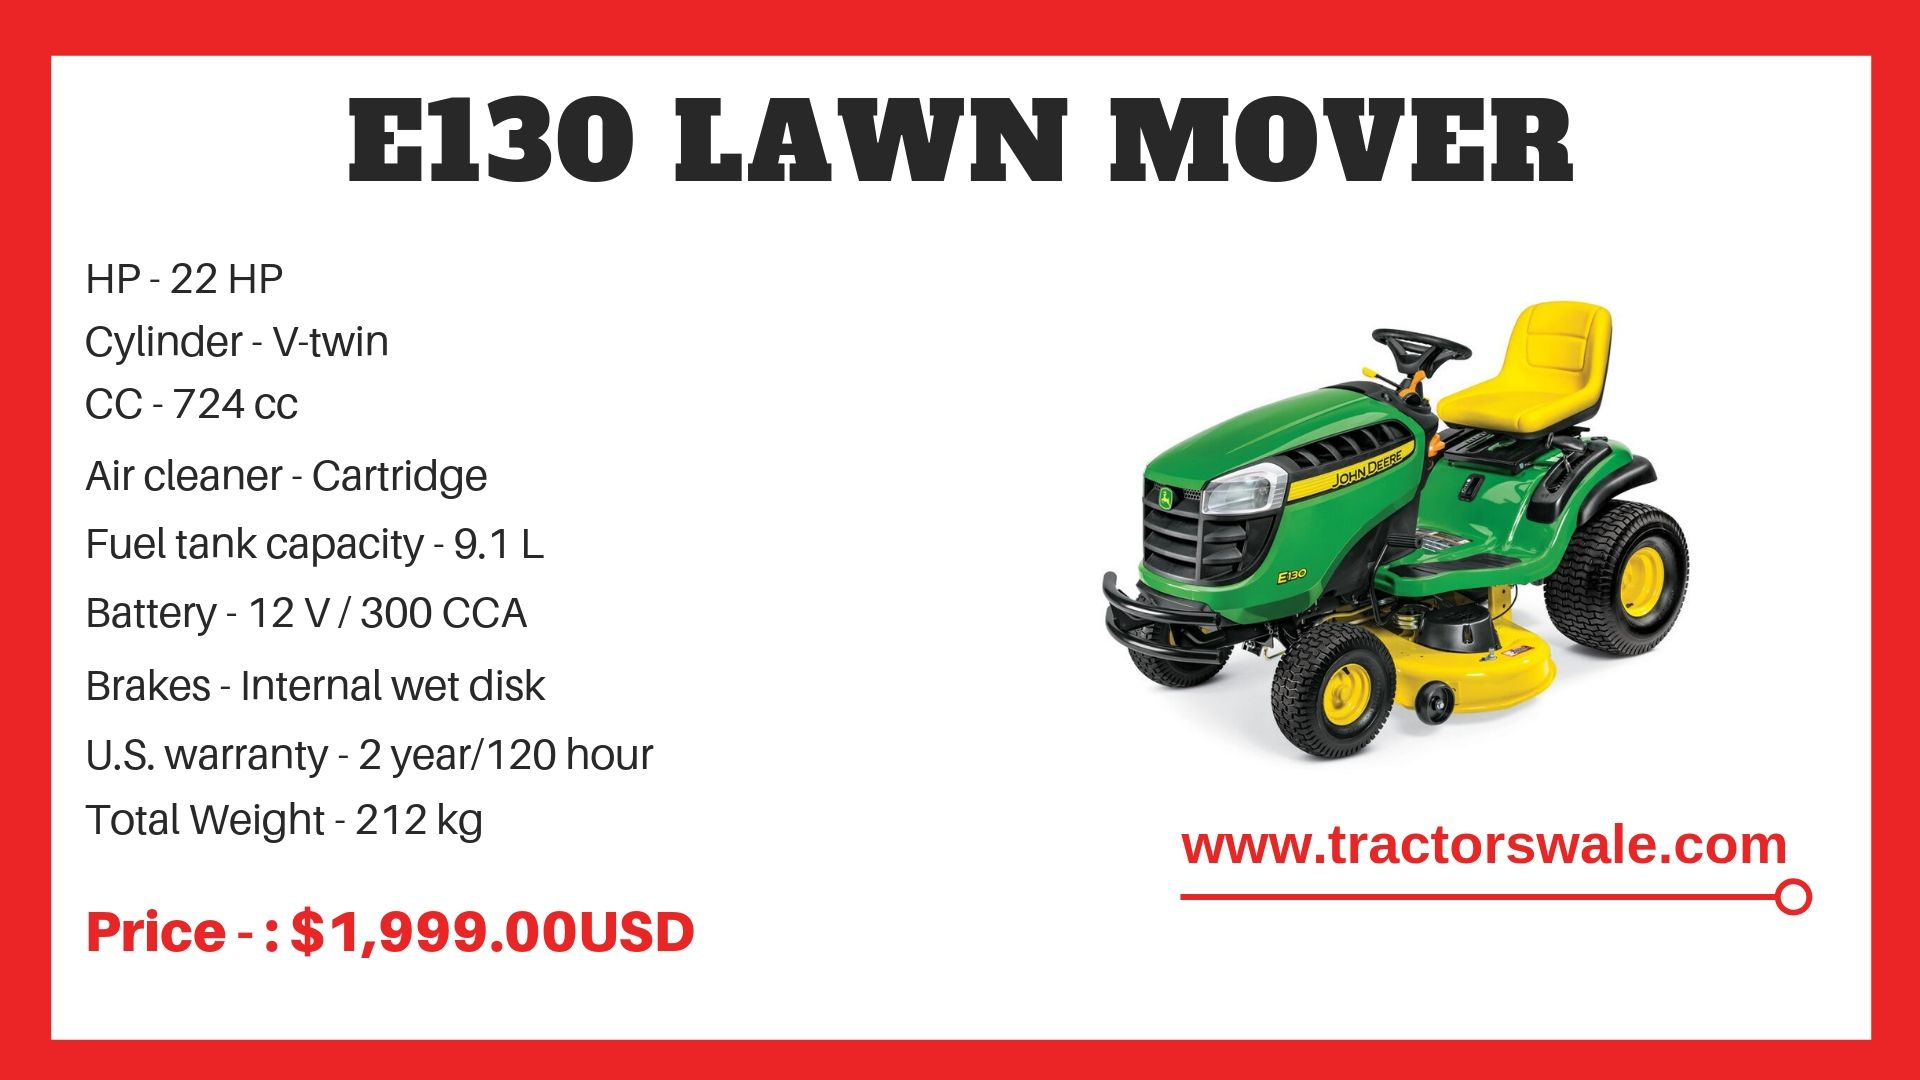 Lawn Mower Tractor E130 Specifications